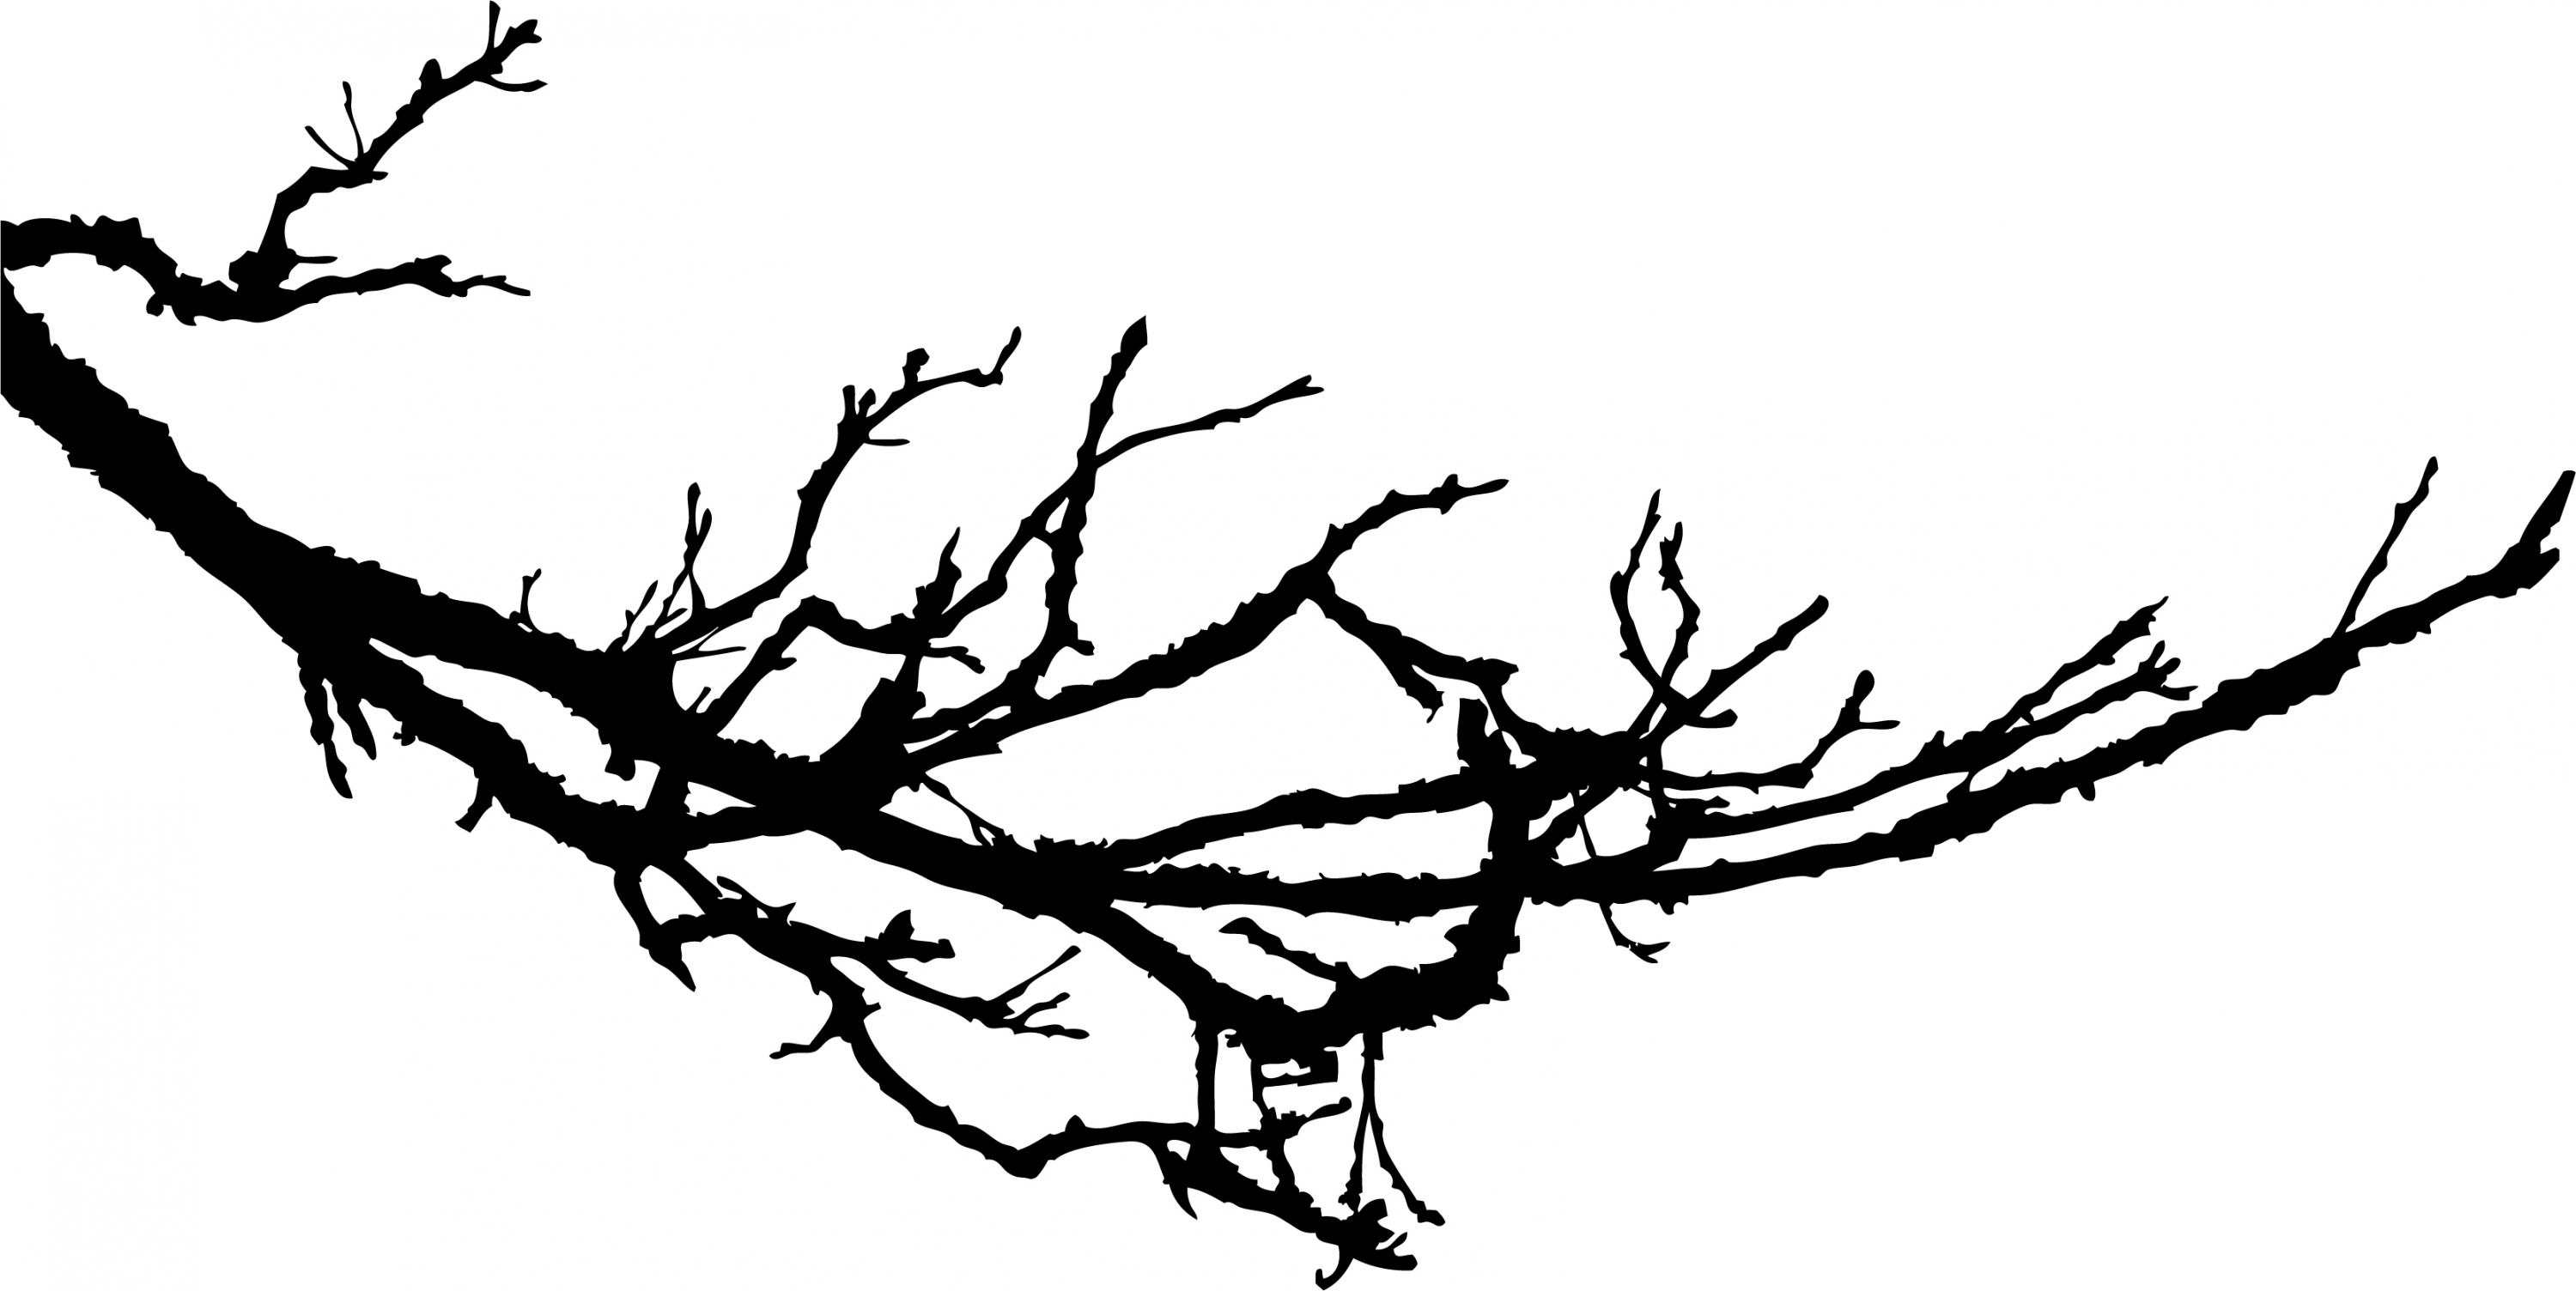 Broken Tree Branch Clip Art.